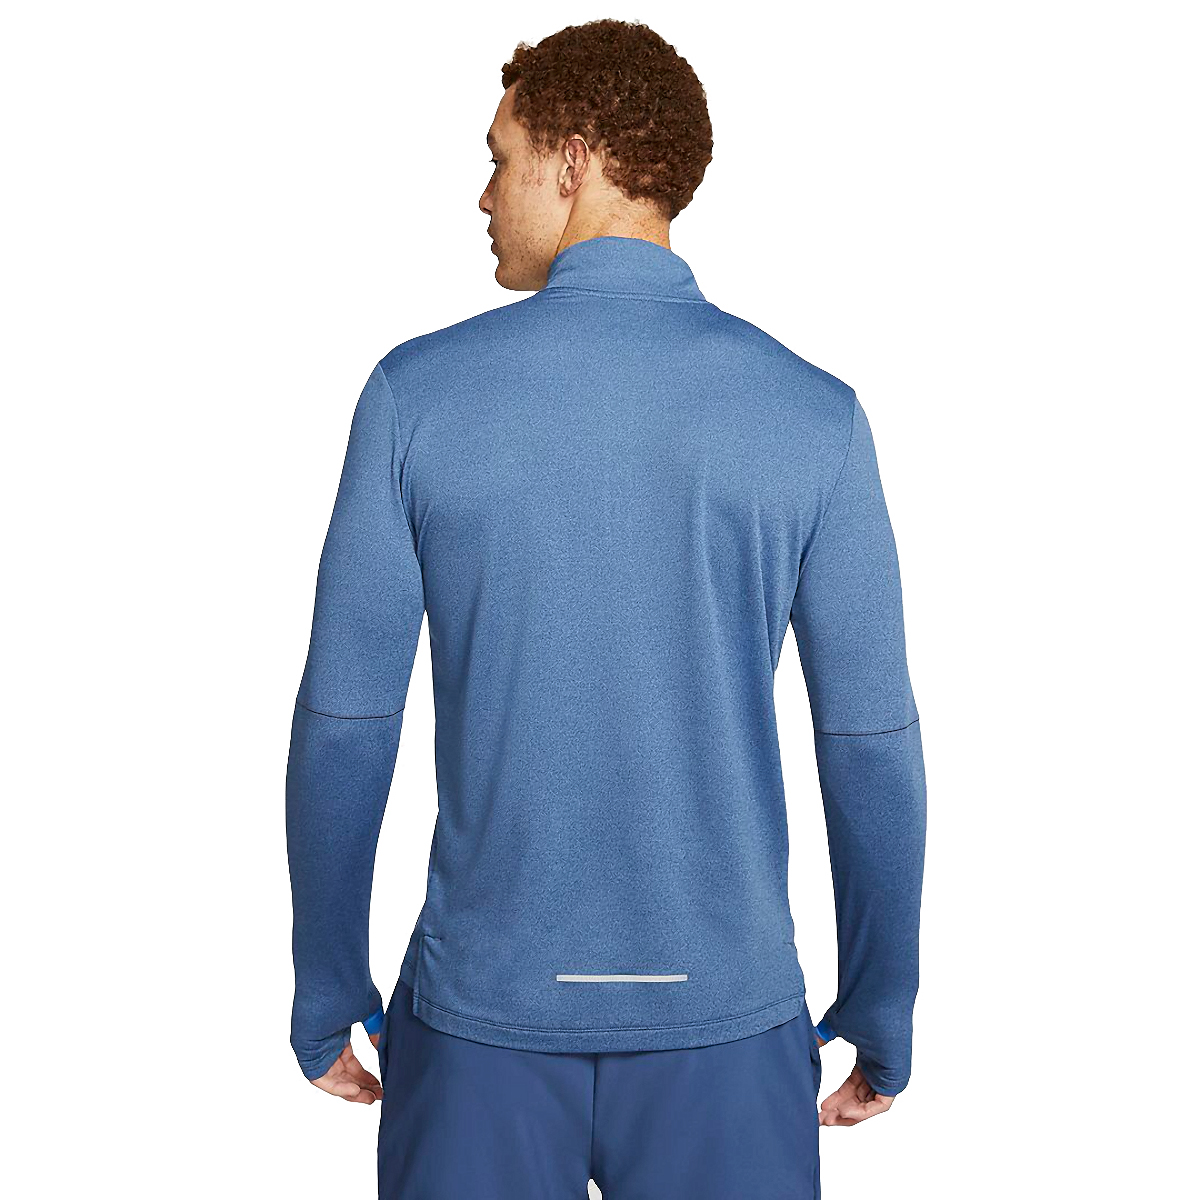 Men's Nike Element Half Zip 3.0, , large, image 2